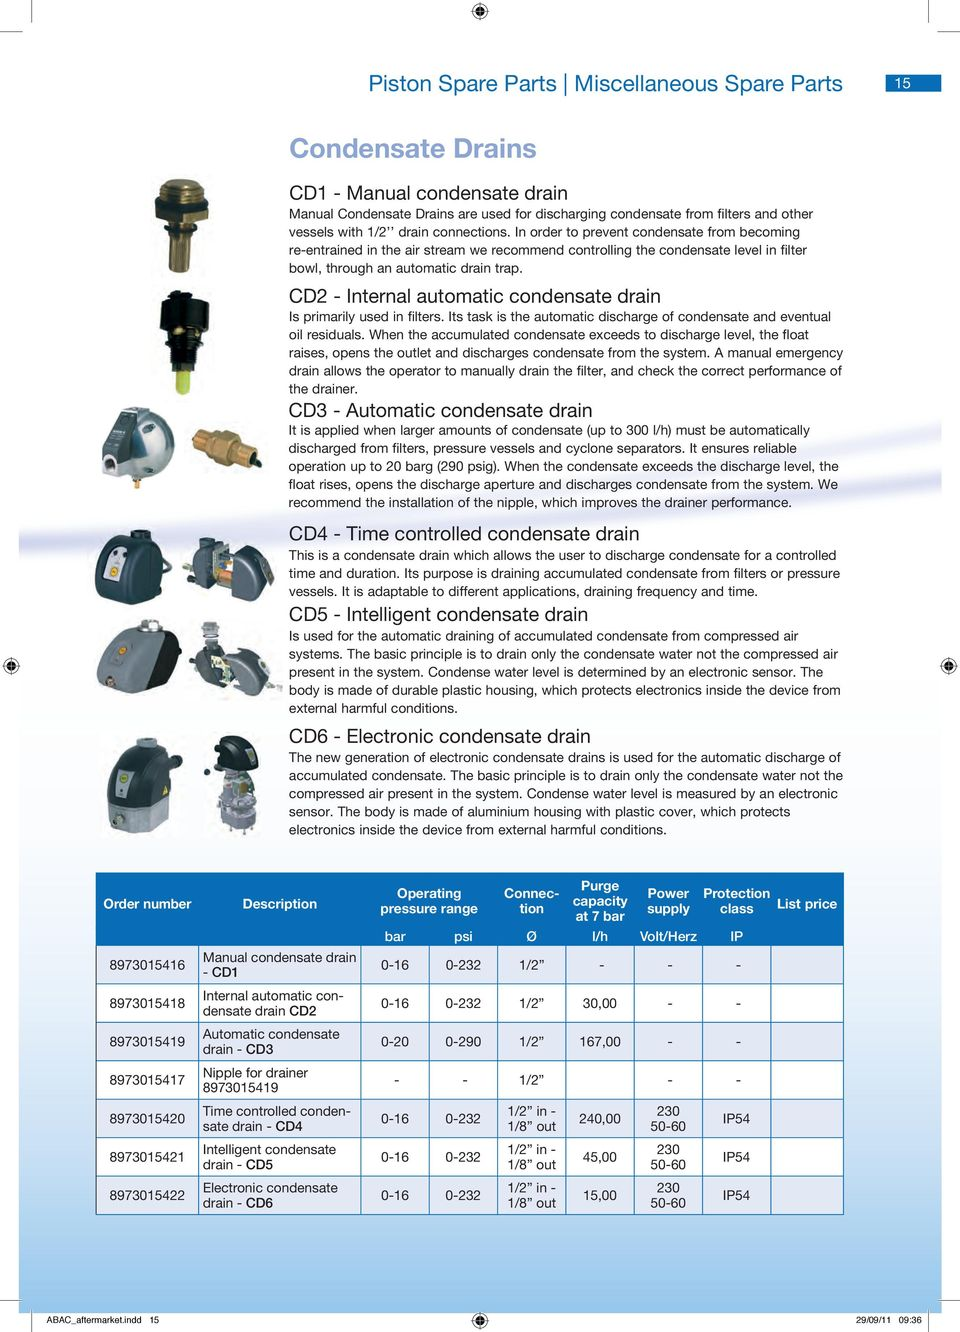 CD2 - Internal automatic condensate drain Is primarily used in filters. Its  task is the